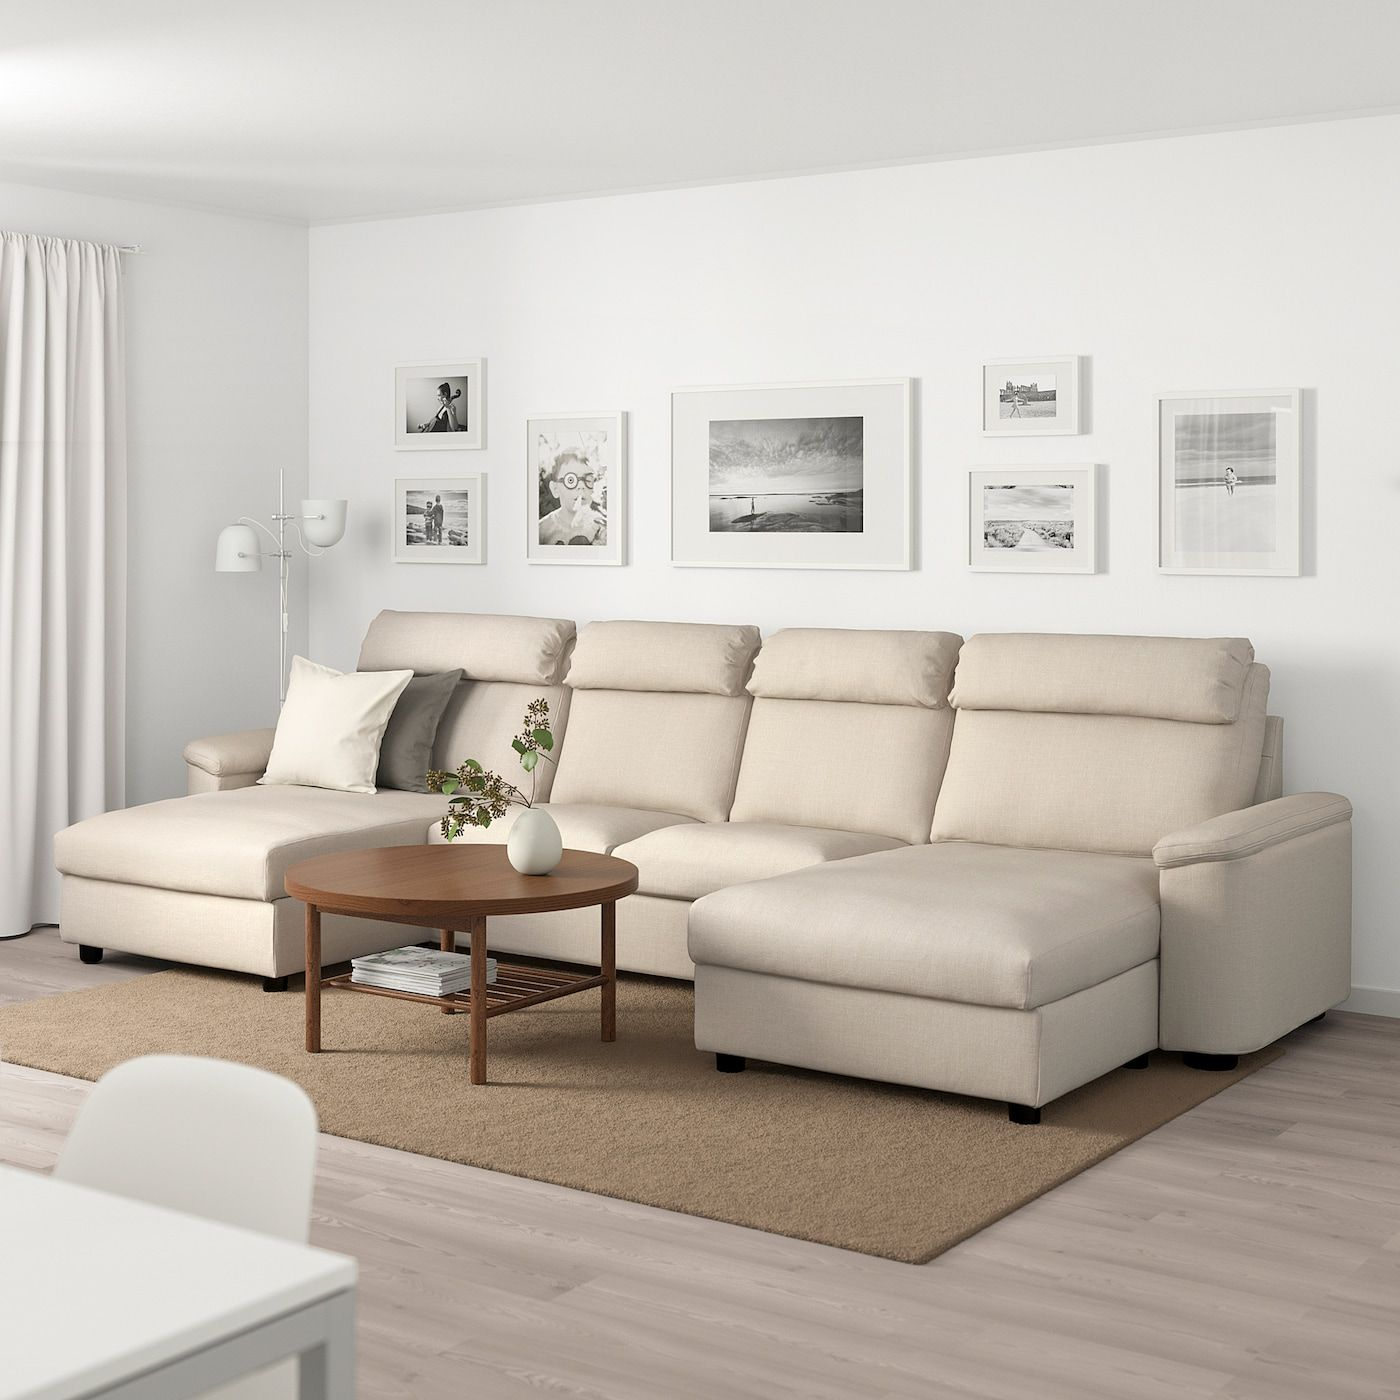 Lidhult Sectional 4 Seat With Chaise Gassebol Light Beige Shop Ikea Ca Ikea In 2020 Sectional Chaise Sofa Furniture